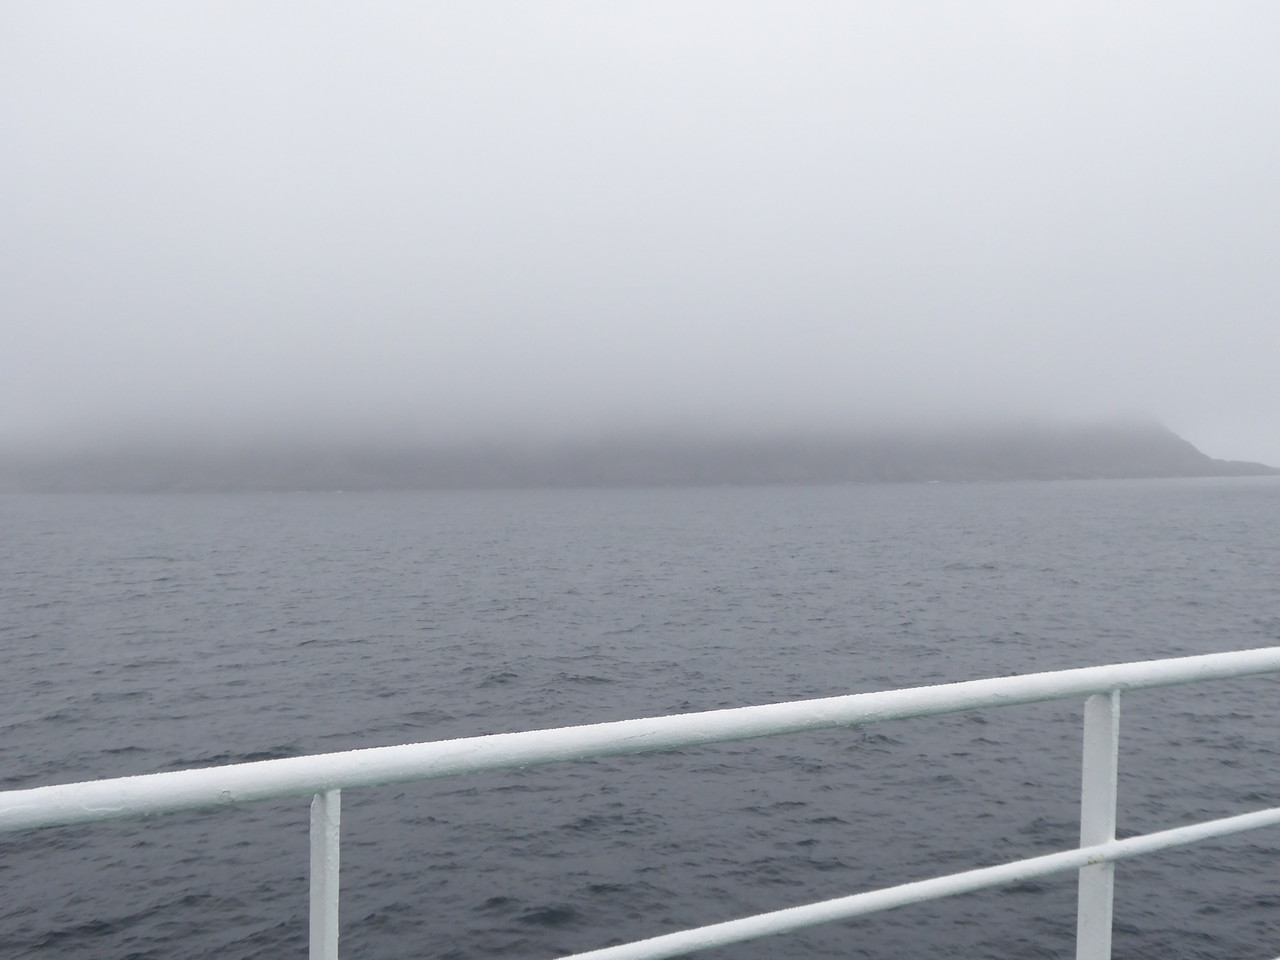 Back on board, Monumental Island is barely visible in the fog.